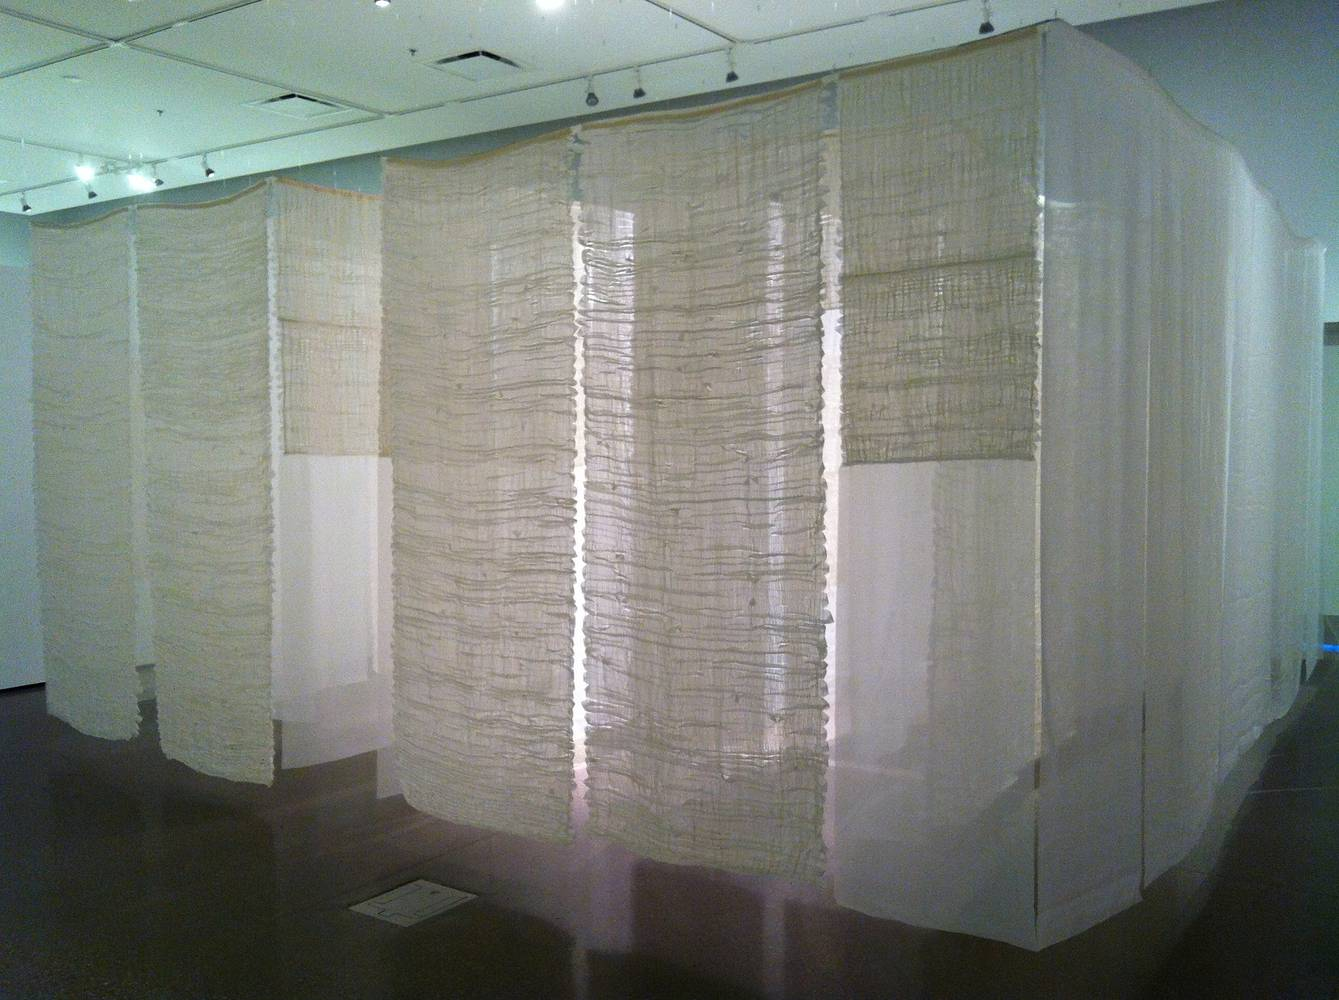 White Labyrinth (finding the thread of the hero-path) by Maria Z Madacky